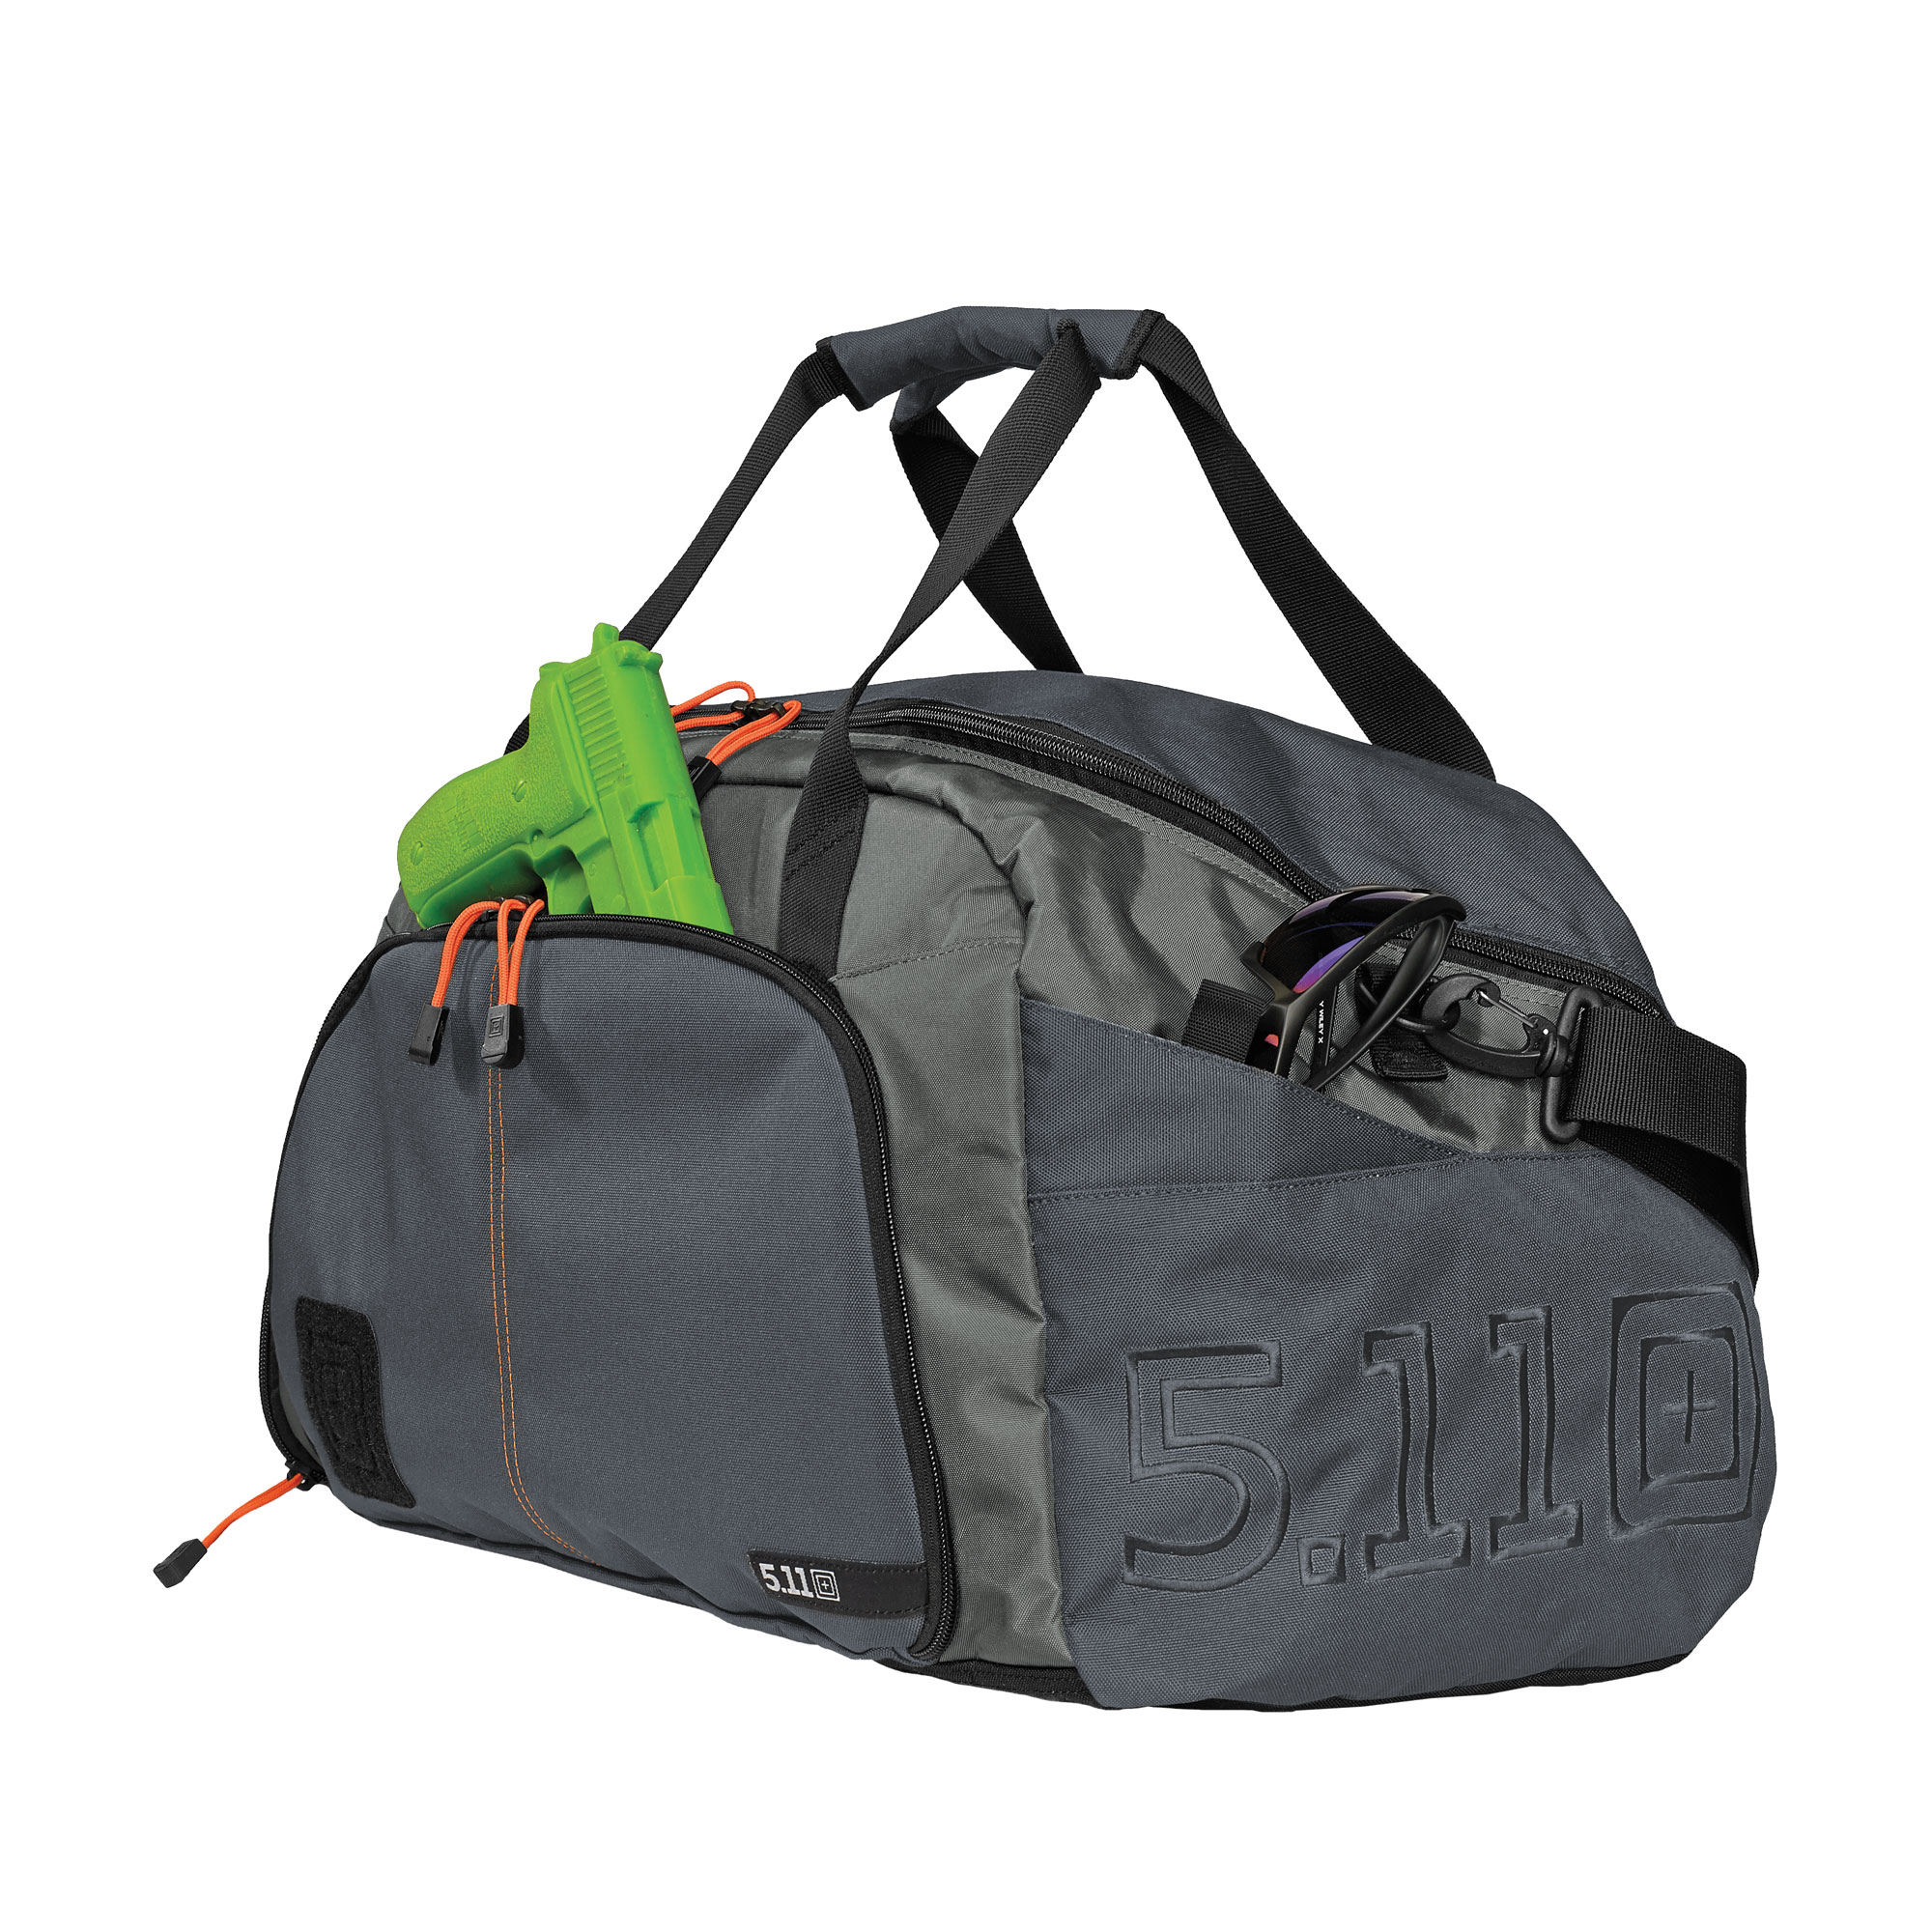 5.11 RECON Outbound Gym Bag [Clearance]